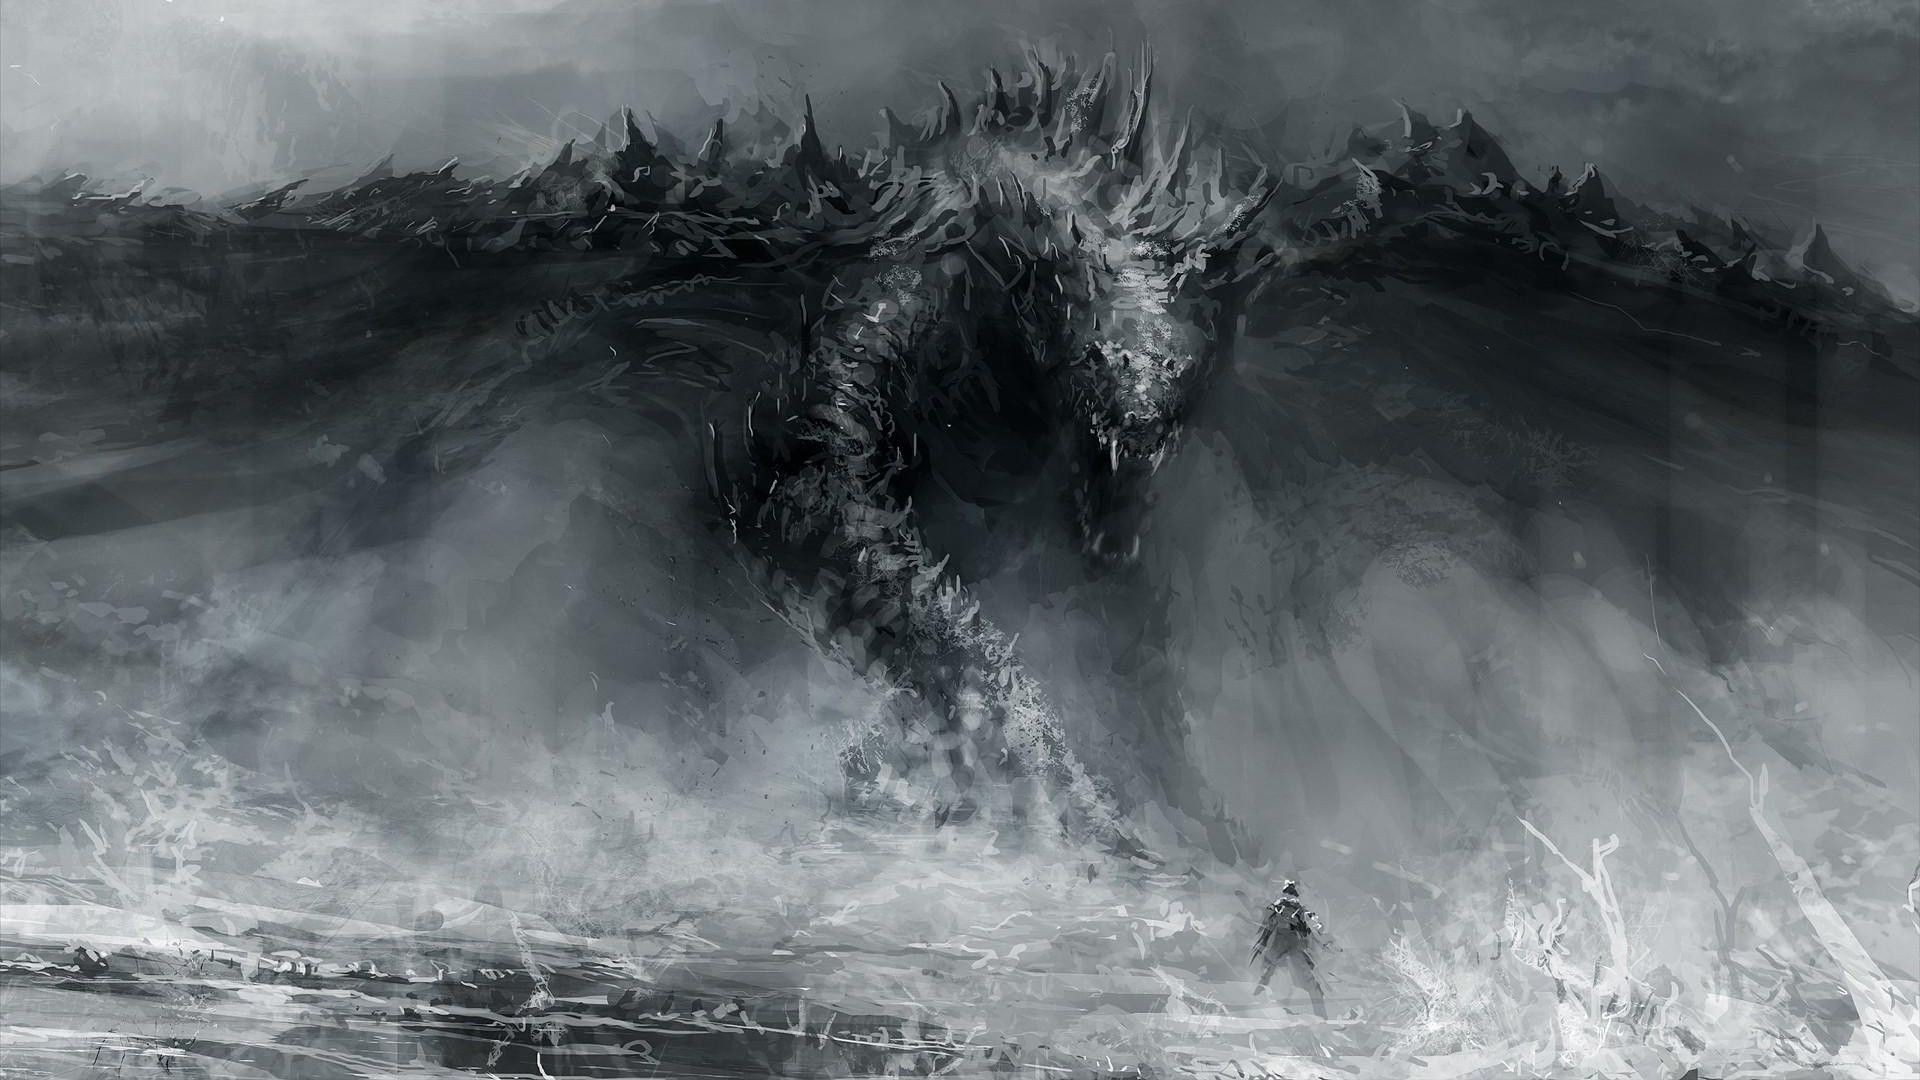 Dragon wallpaper 1920x1080 download free cool - Dragon backgrounds 1920x1080 ...